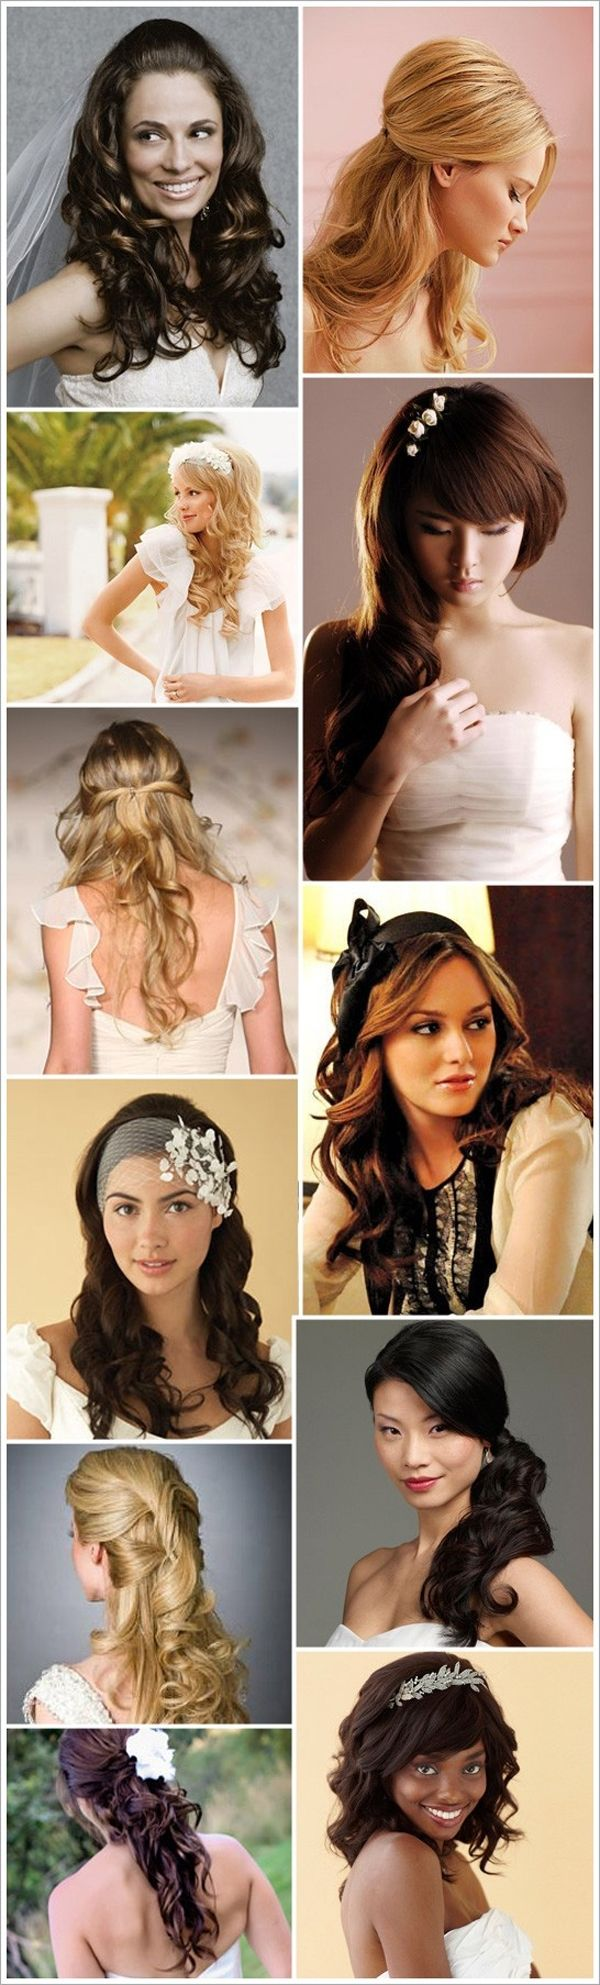 great wedding hairstyle compilation by Sara Roeder of Aisle Candy ...